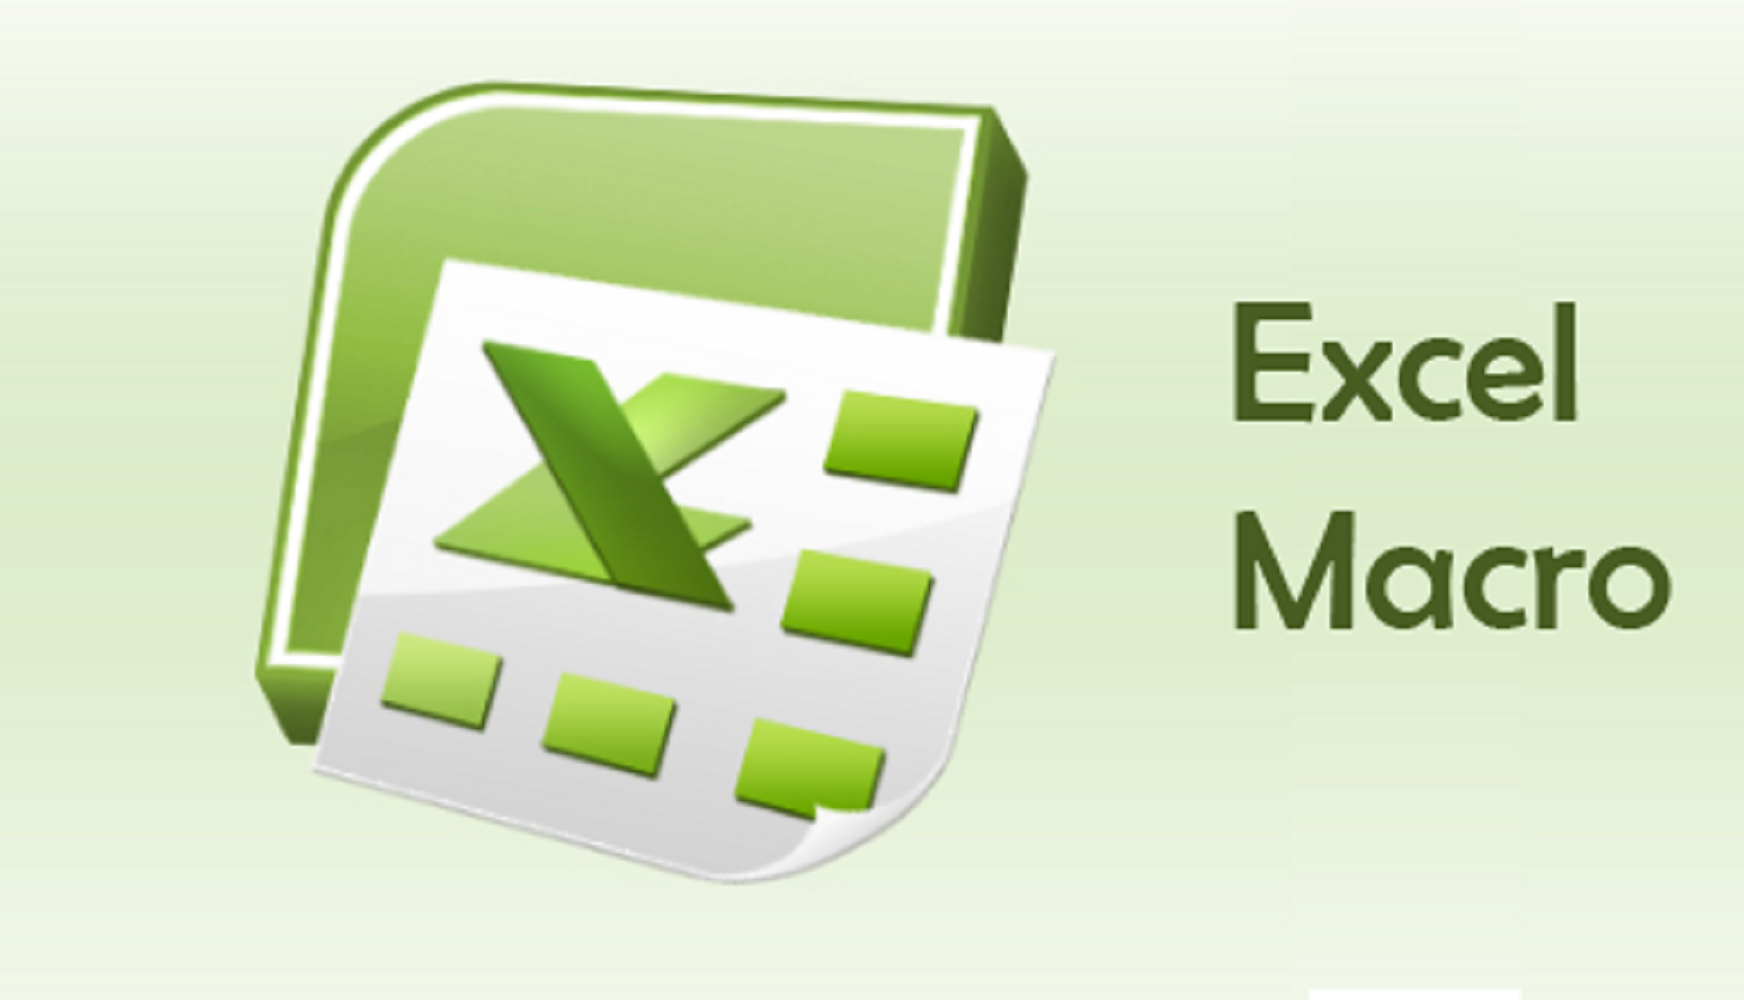 create macro in excel for automation